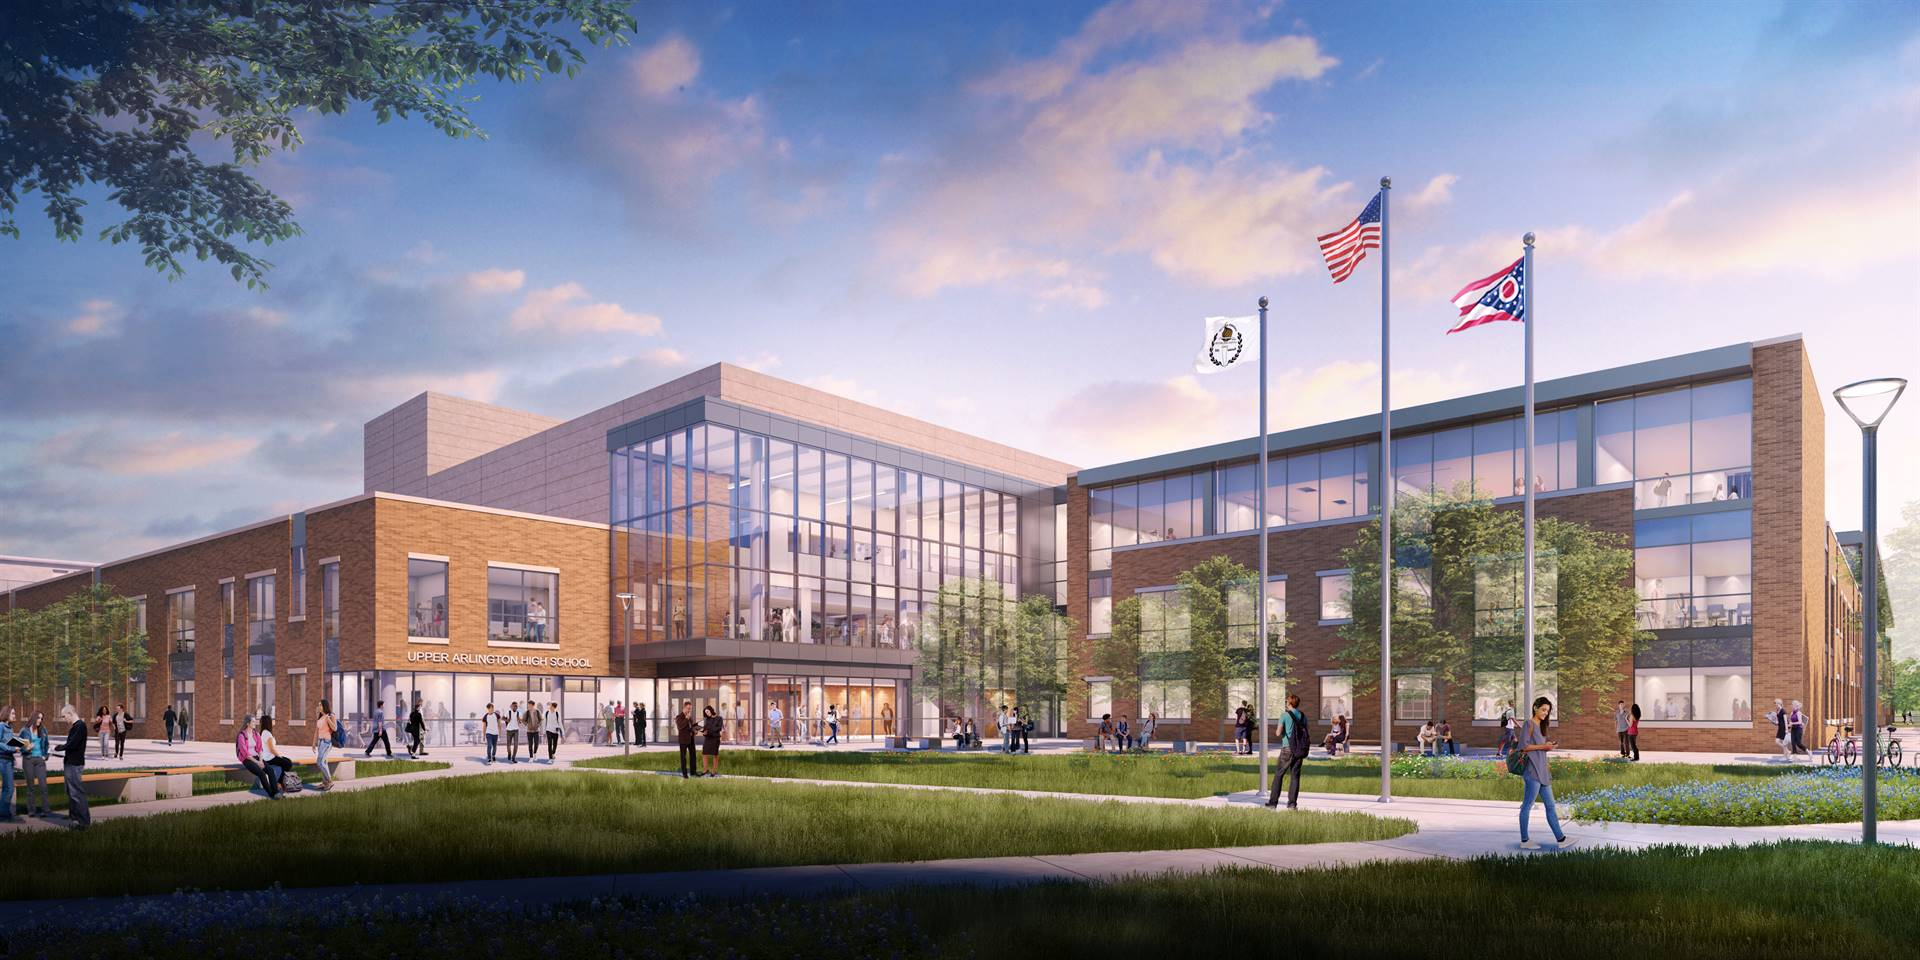 The main entrance to the new Upper Arlington High School